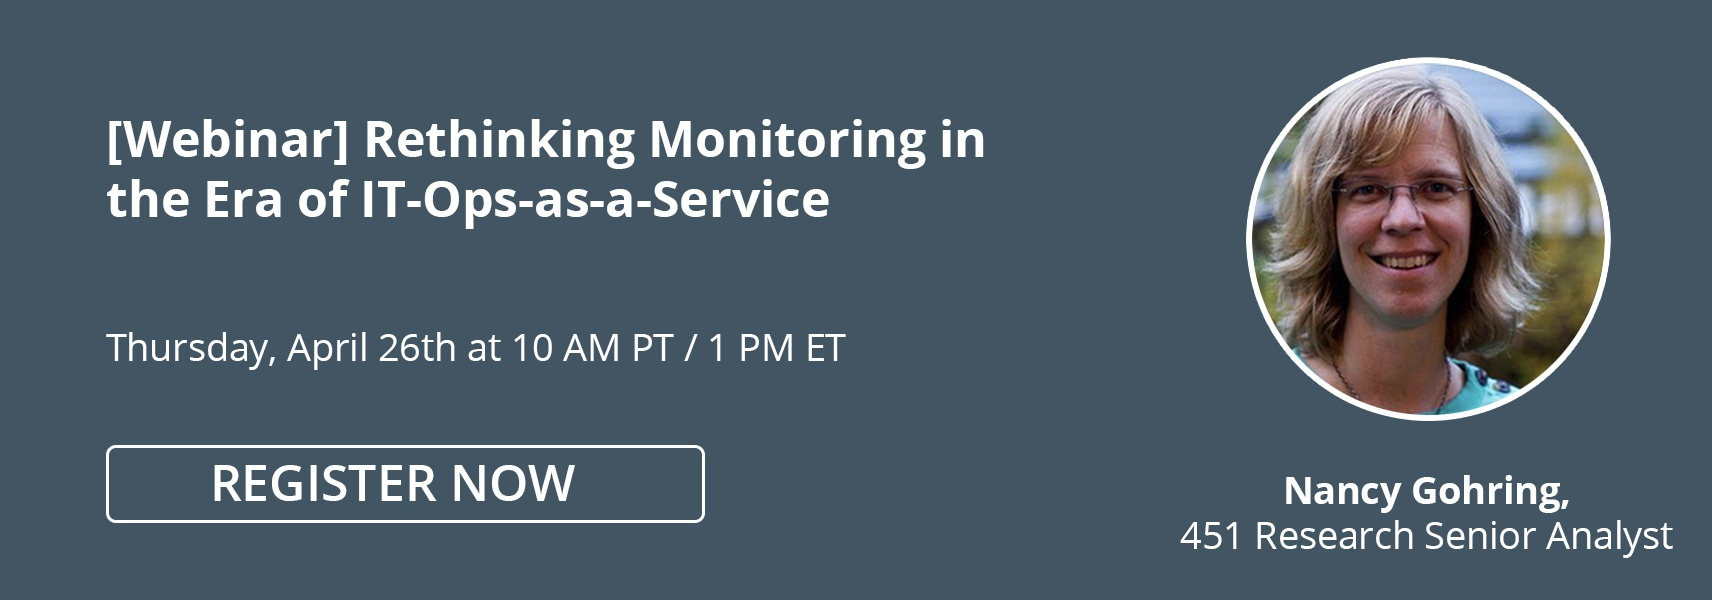 Webinar-Rethinking-Monitoring-CTA